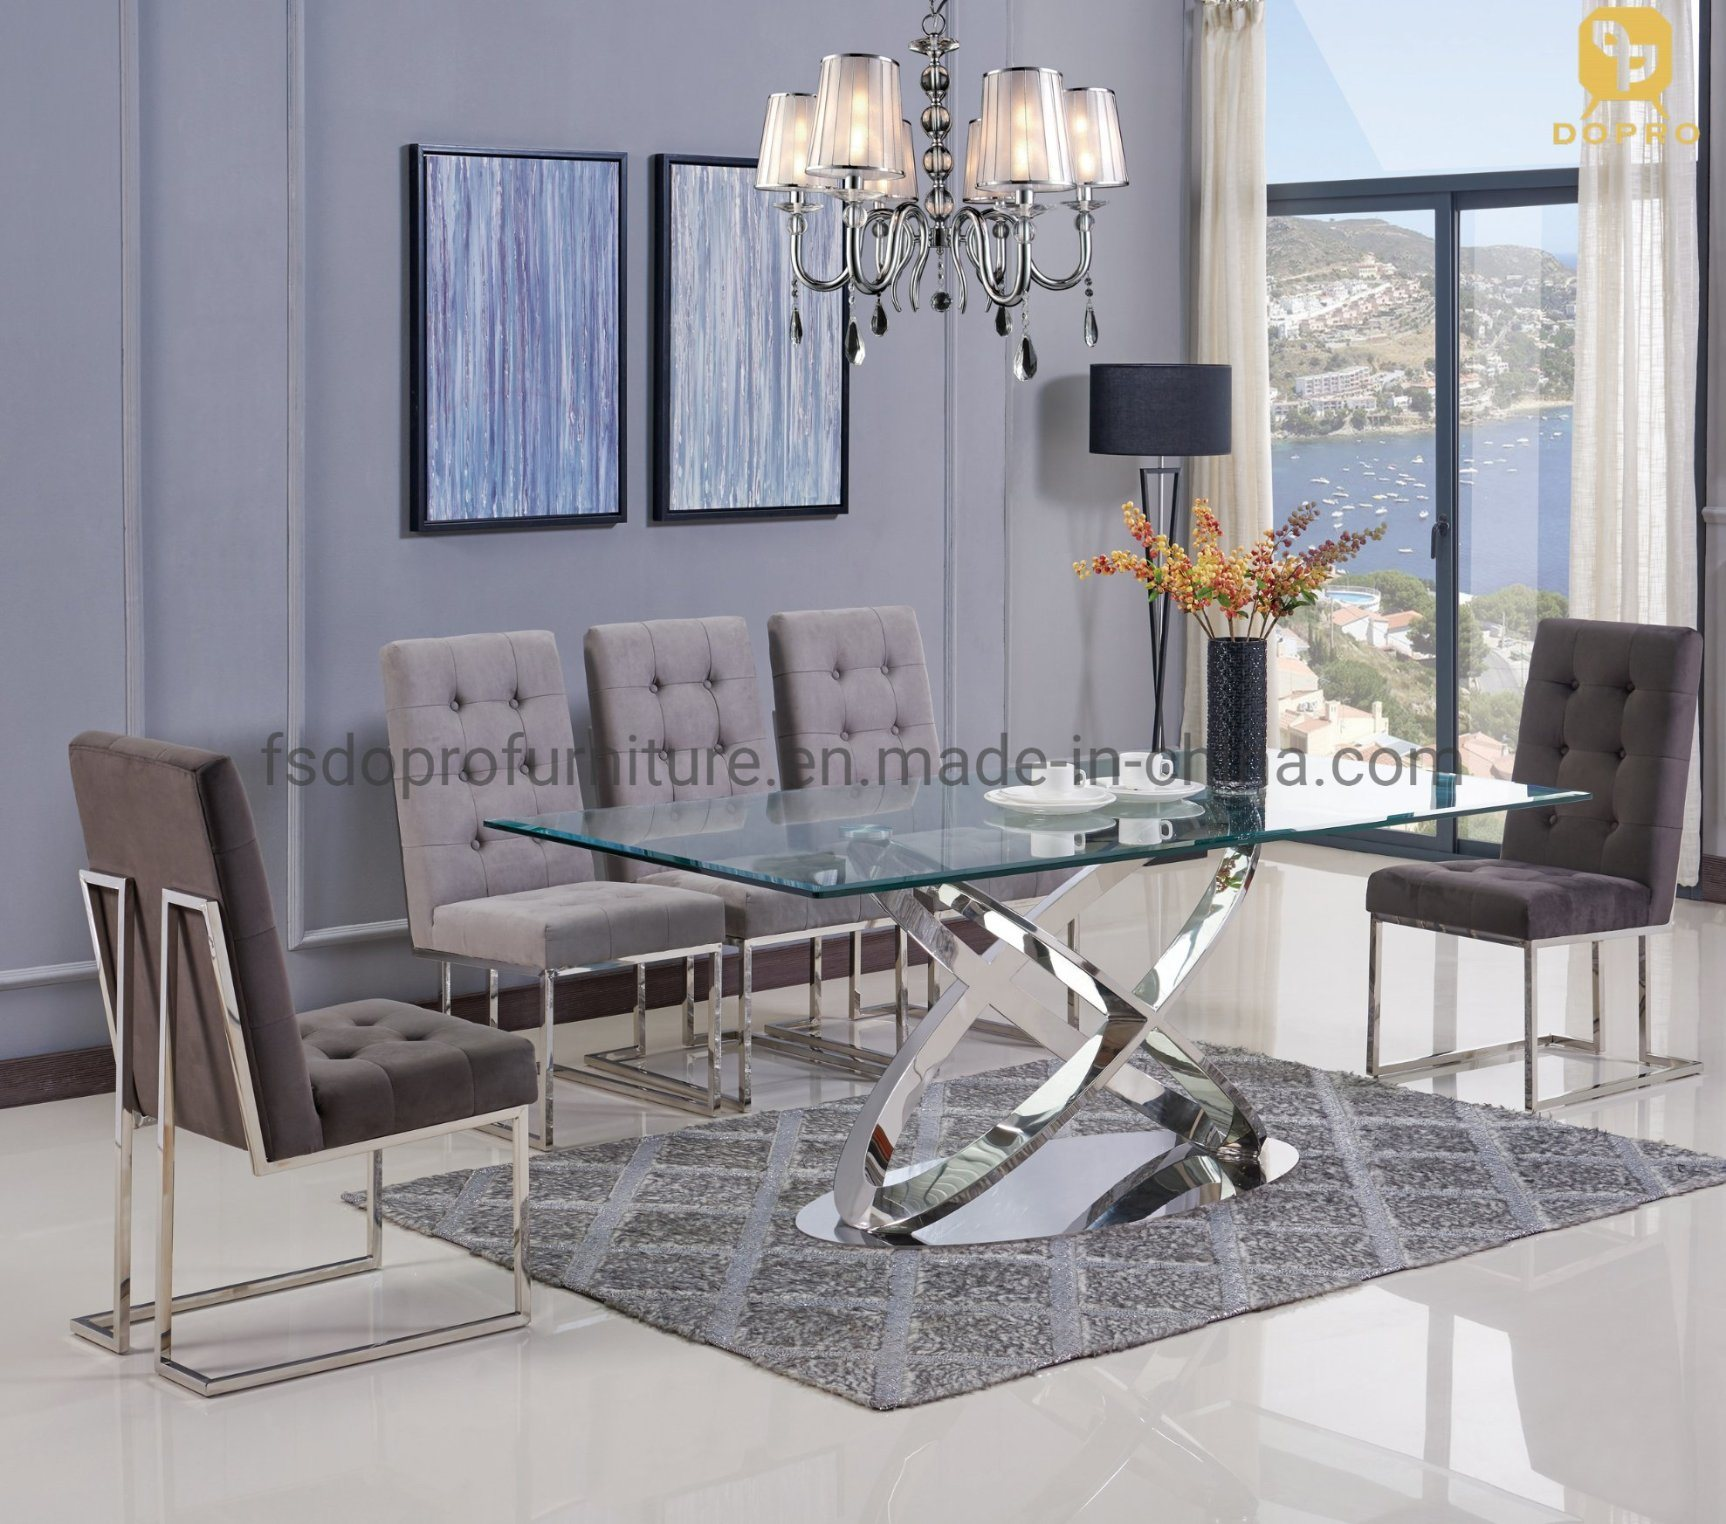 Master Design Dining Room Furniture 9 Seater Glass Dining Table Set D9